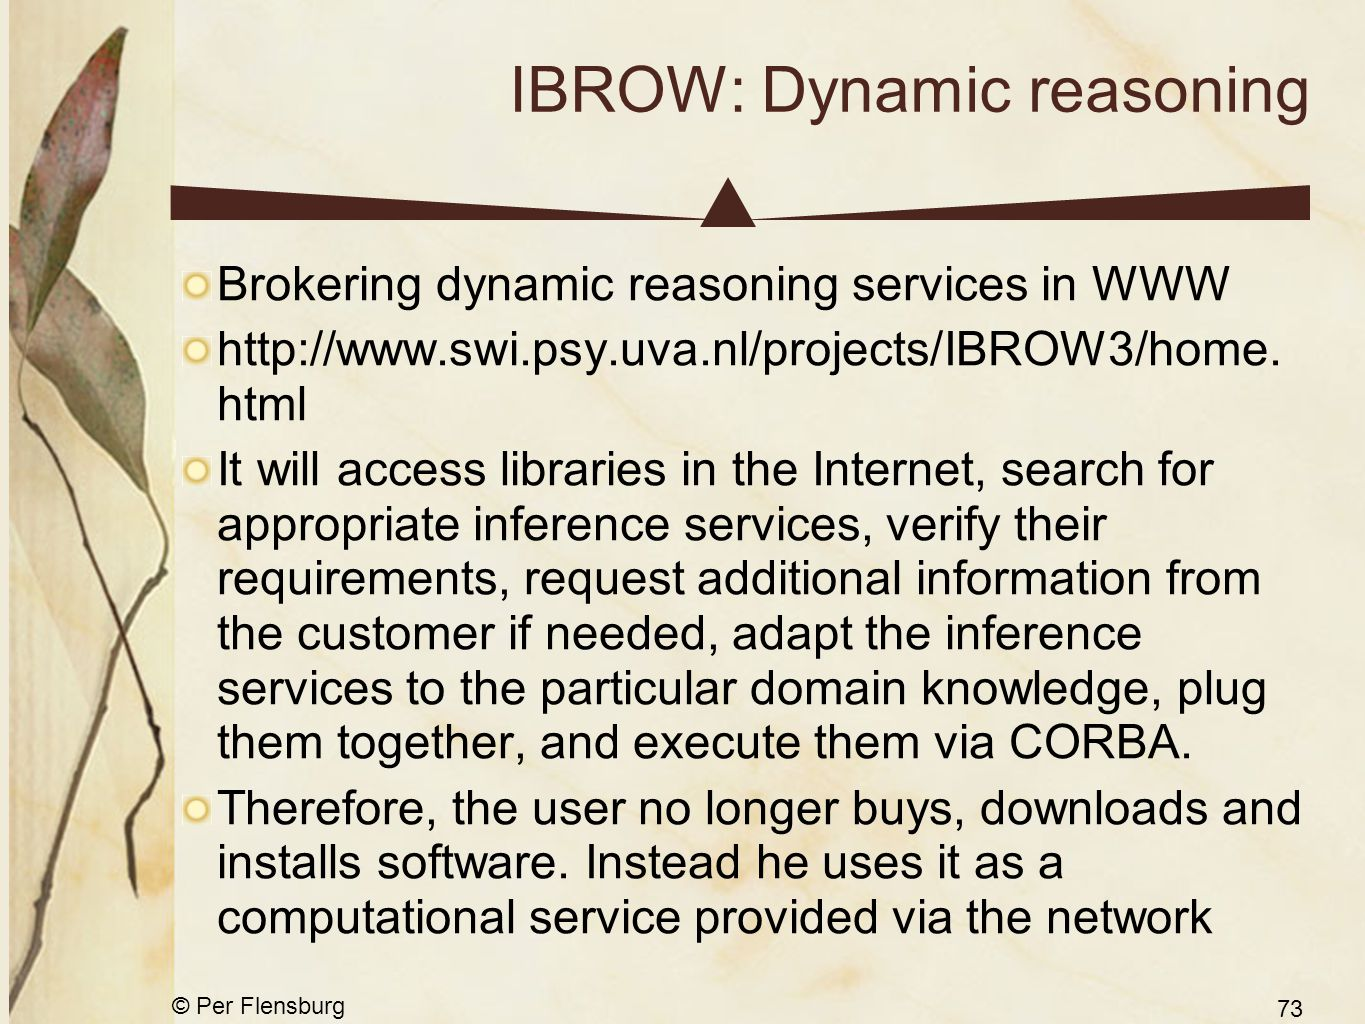 © Per Flensburg 73 IBROW: Dynamic reasoning Brokering dynamic reasoning services in WWW http://www.swi.psy.uva.nl/projects/IBROW3/home.